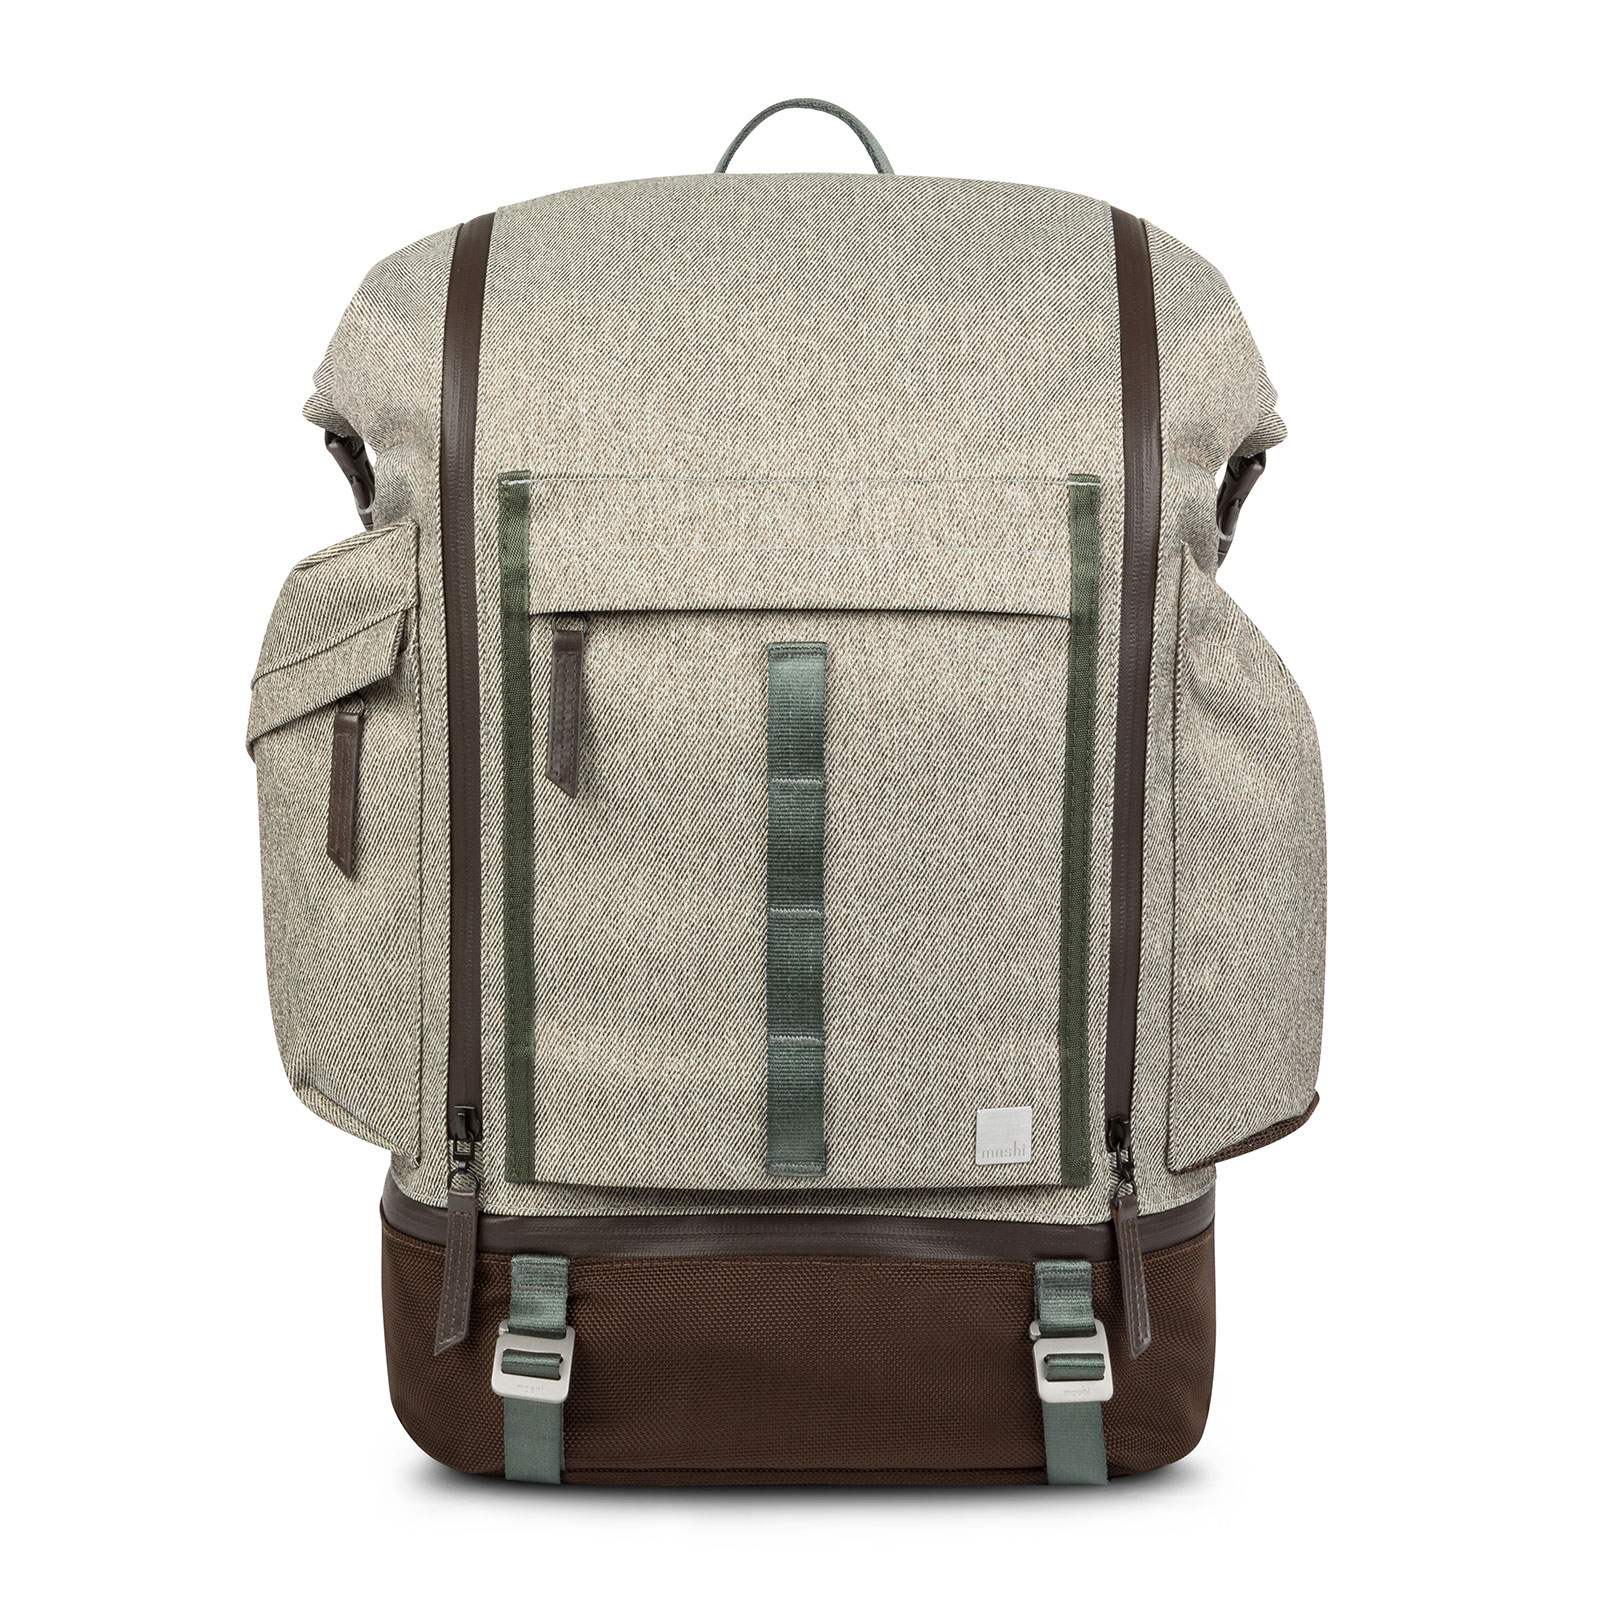 Captus Rolltop Backpack-2-thumbnail